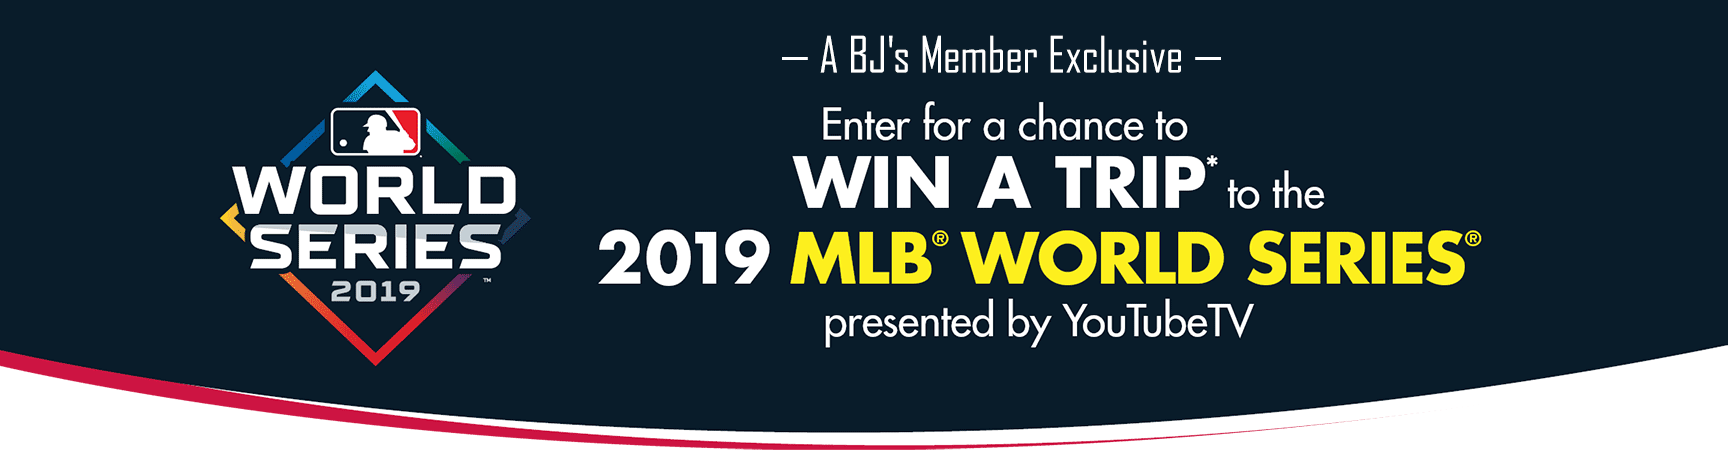 Enter for a chance to win a trip to the 2019 MLB World Series presented by YouTubeTV